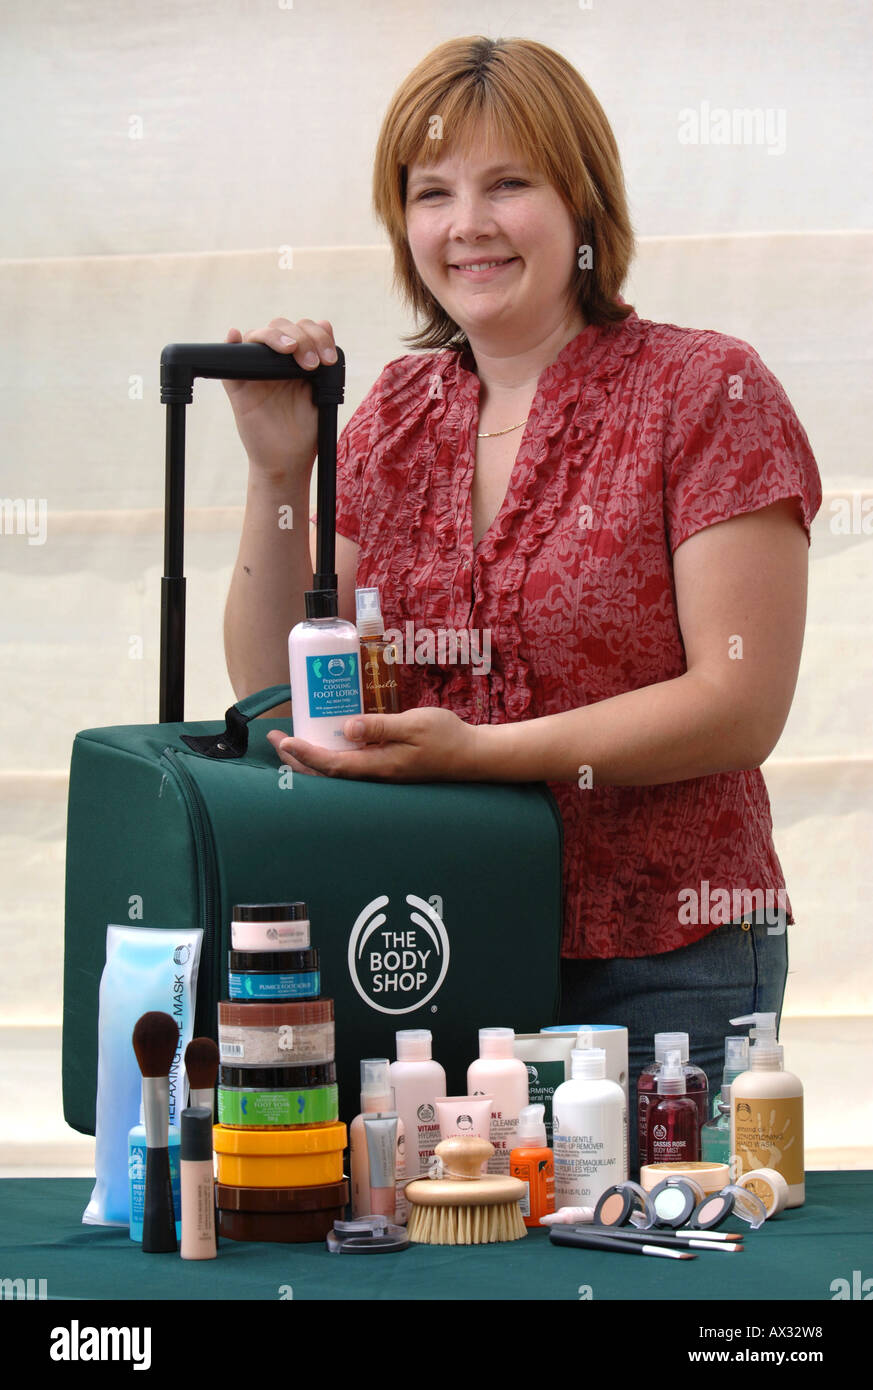 A BODY SHOP AT HOME SALESWOMAN WITH THE BEAUTY PRODUCTS TO